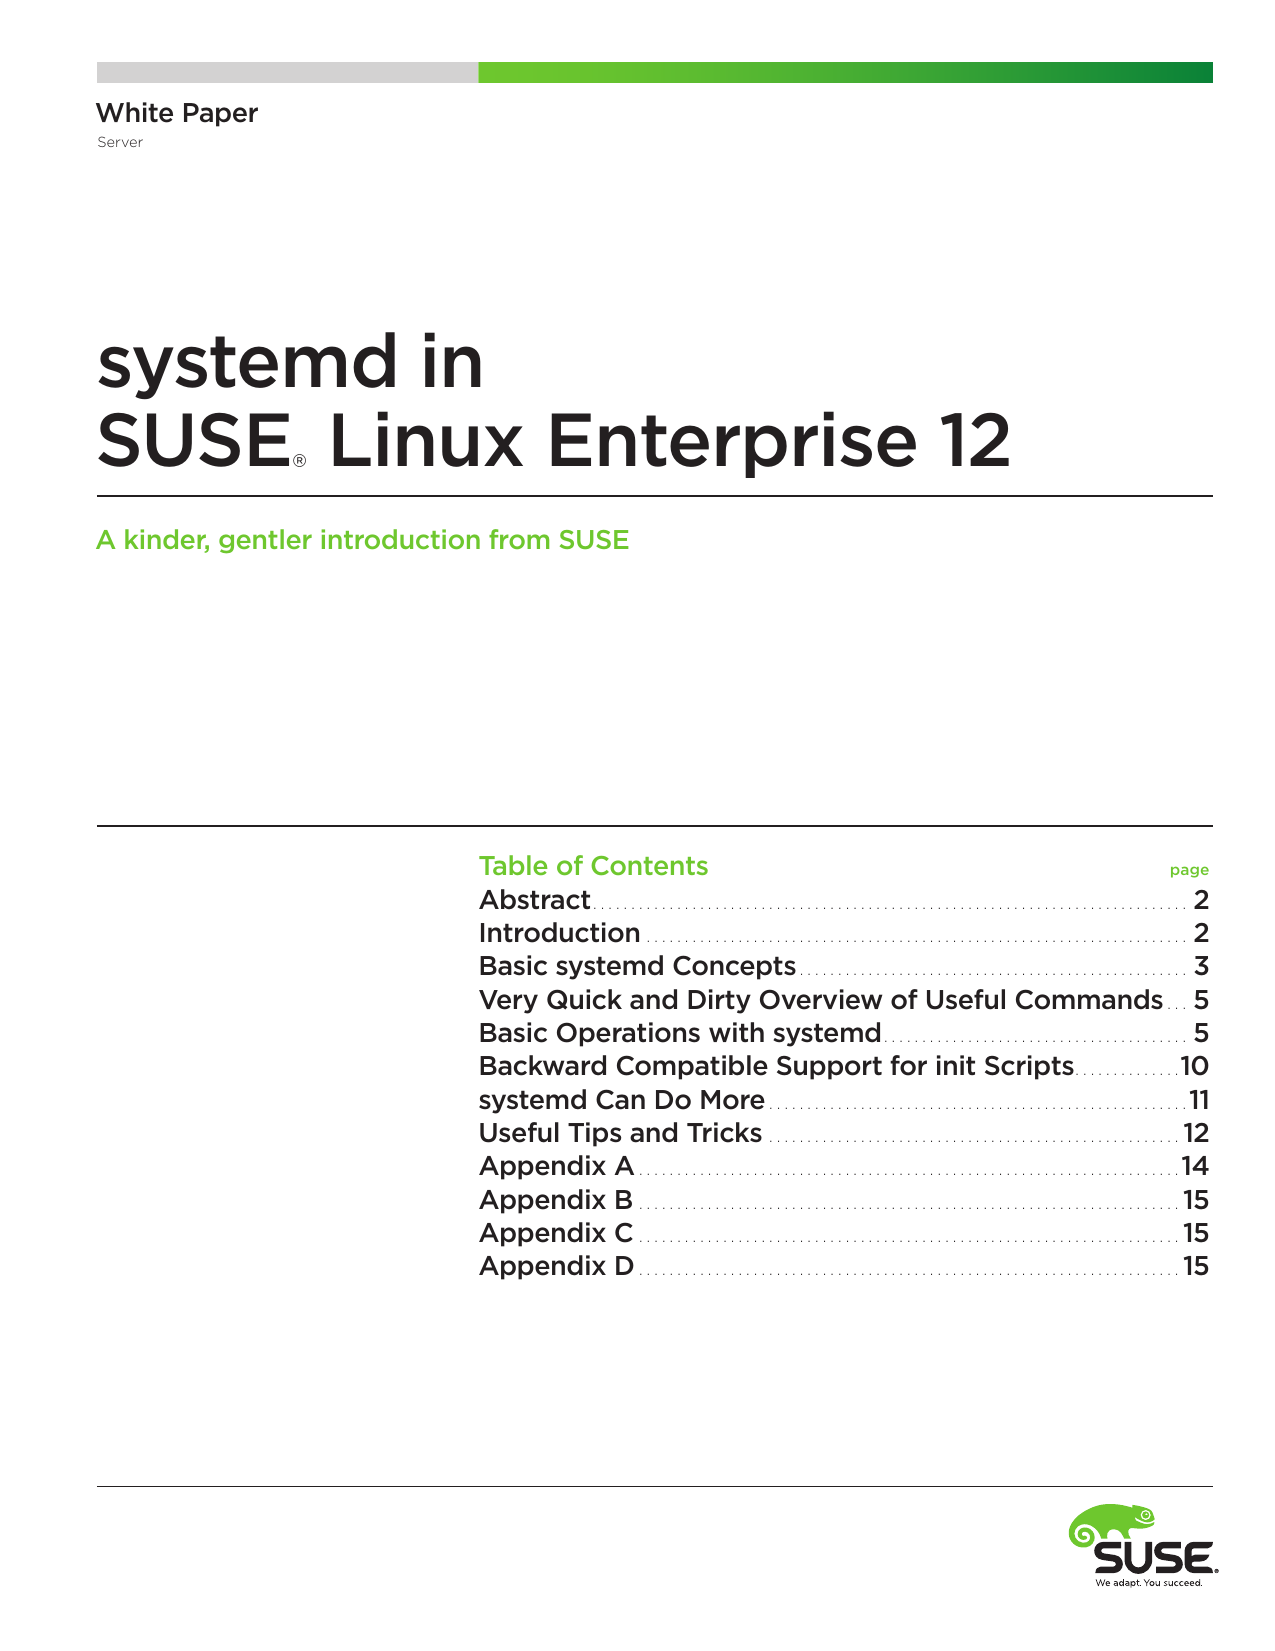 systemd in suse linux enterprise 12 white paper